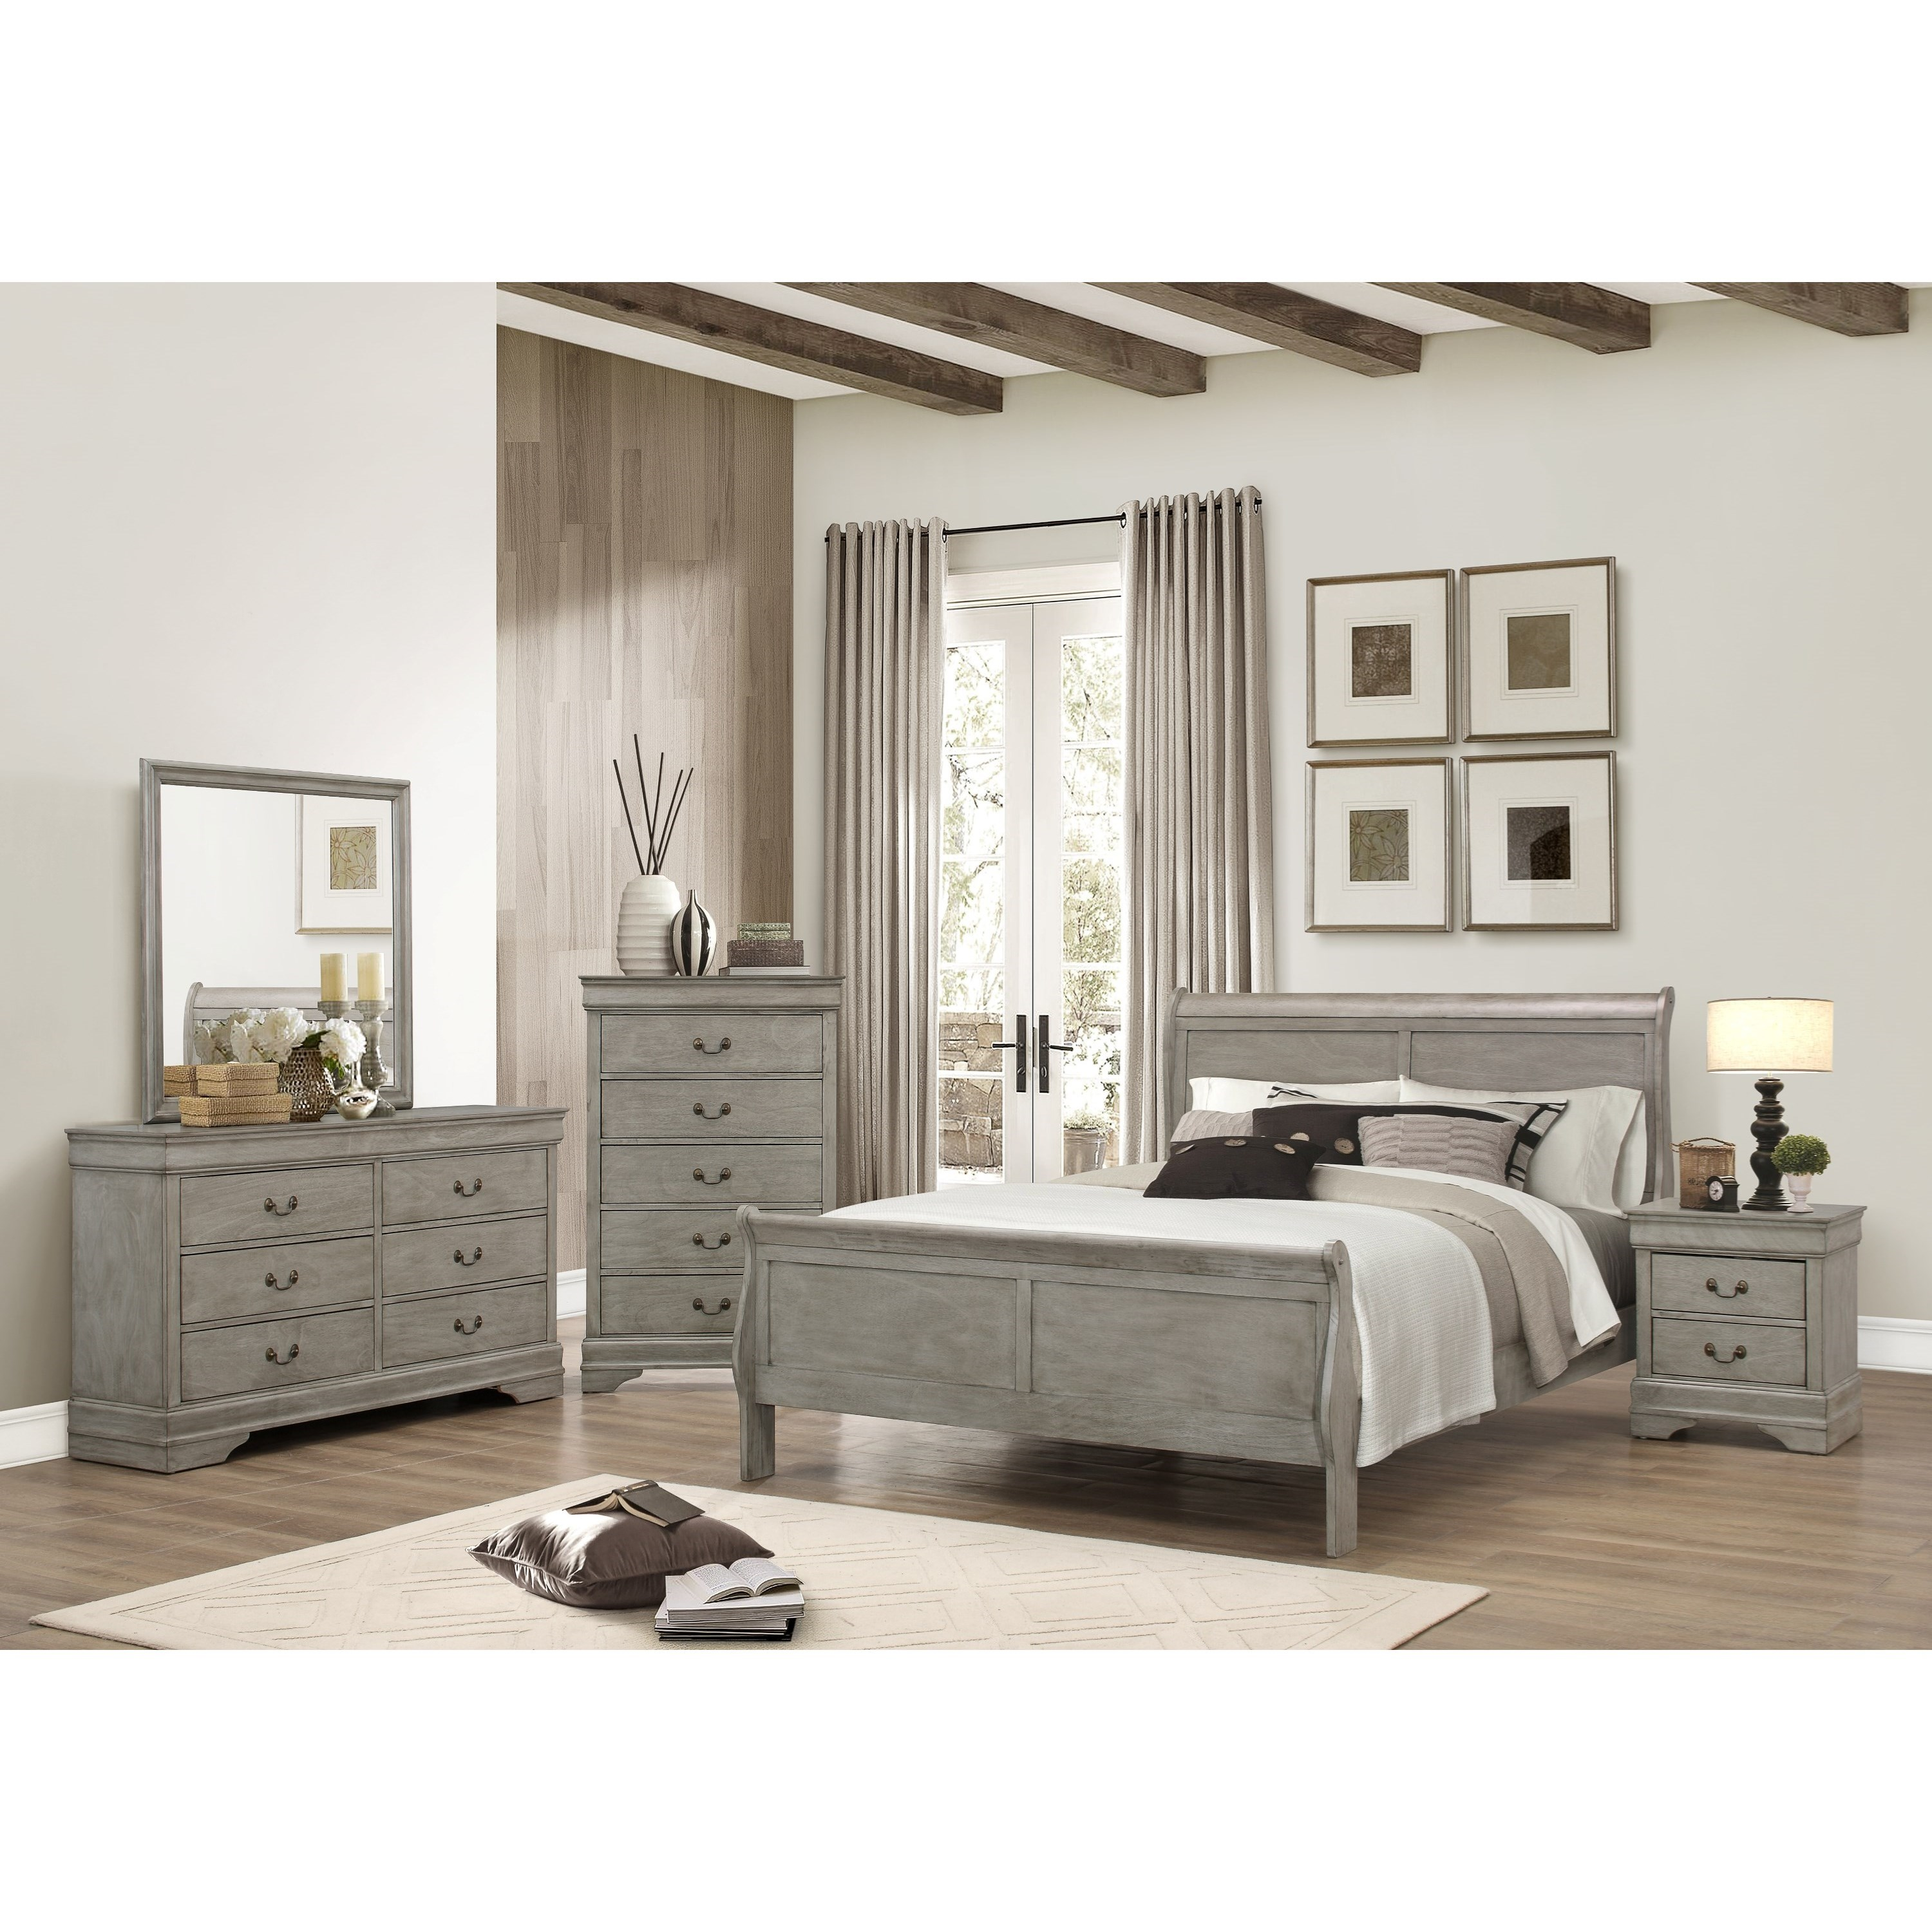 Room Store Chandler: Del Sol CM Louis Phillipe B3550-1 Traditional Dresser With